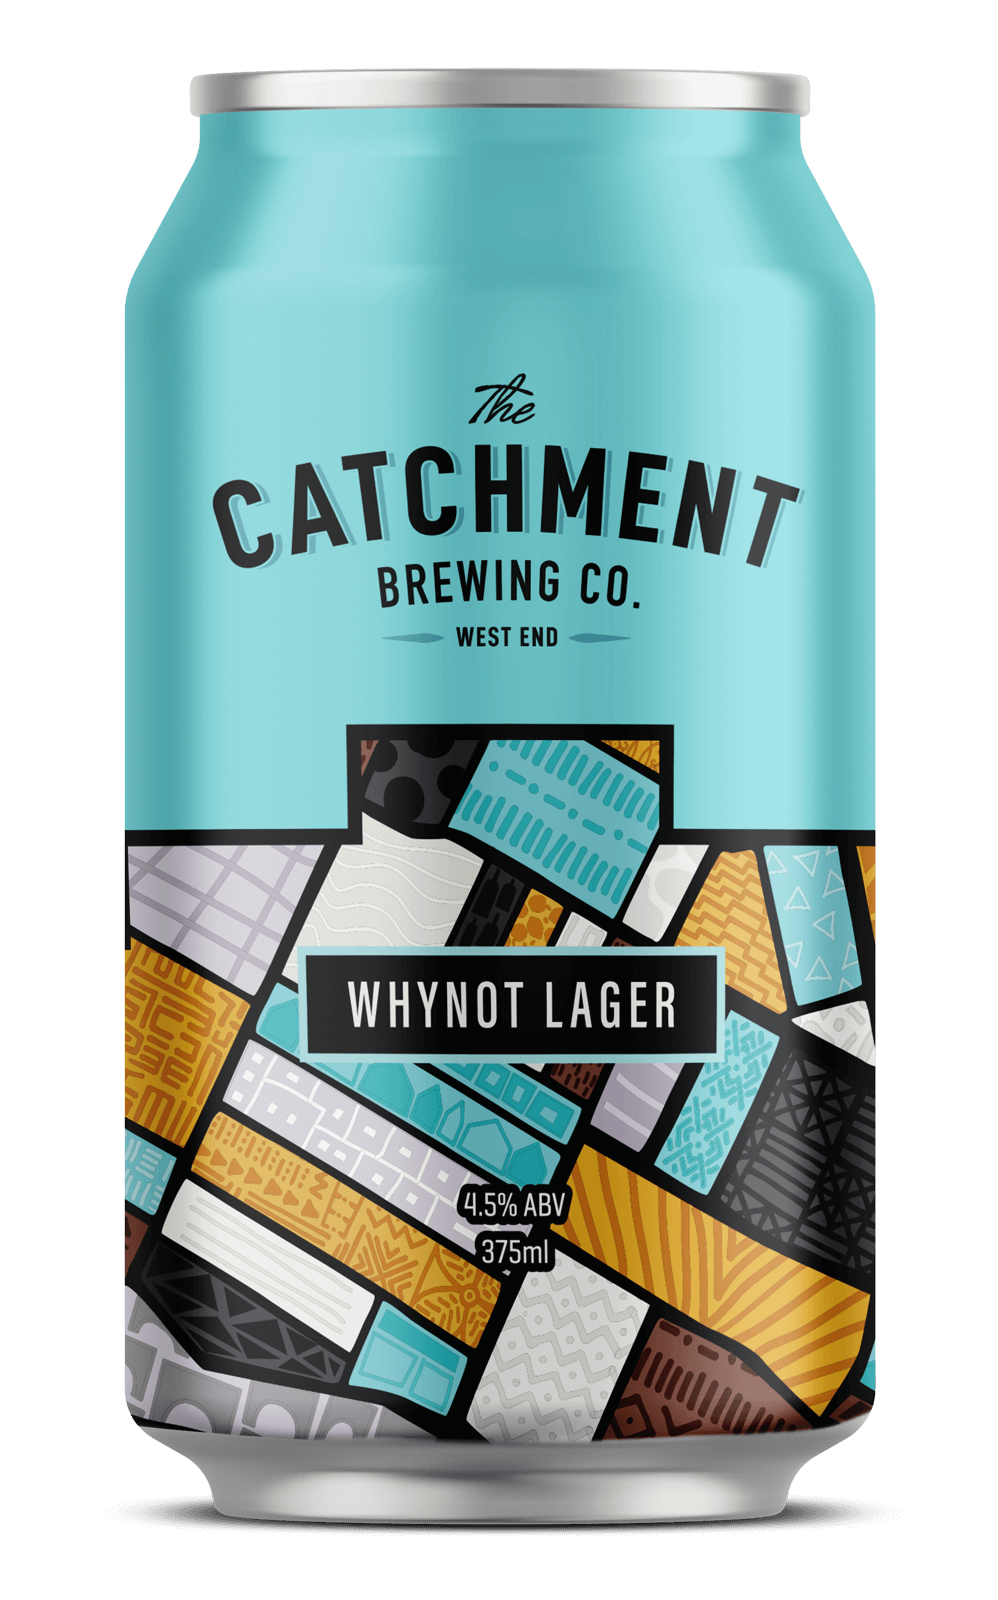 Whynot Lager